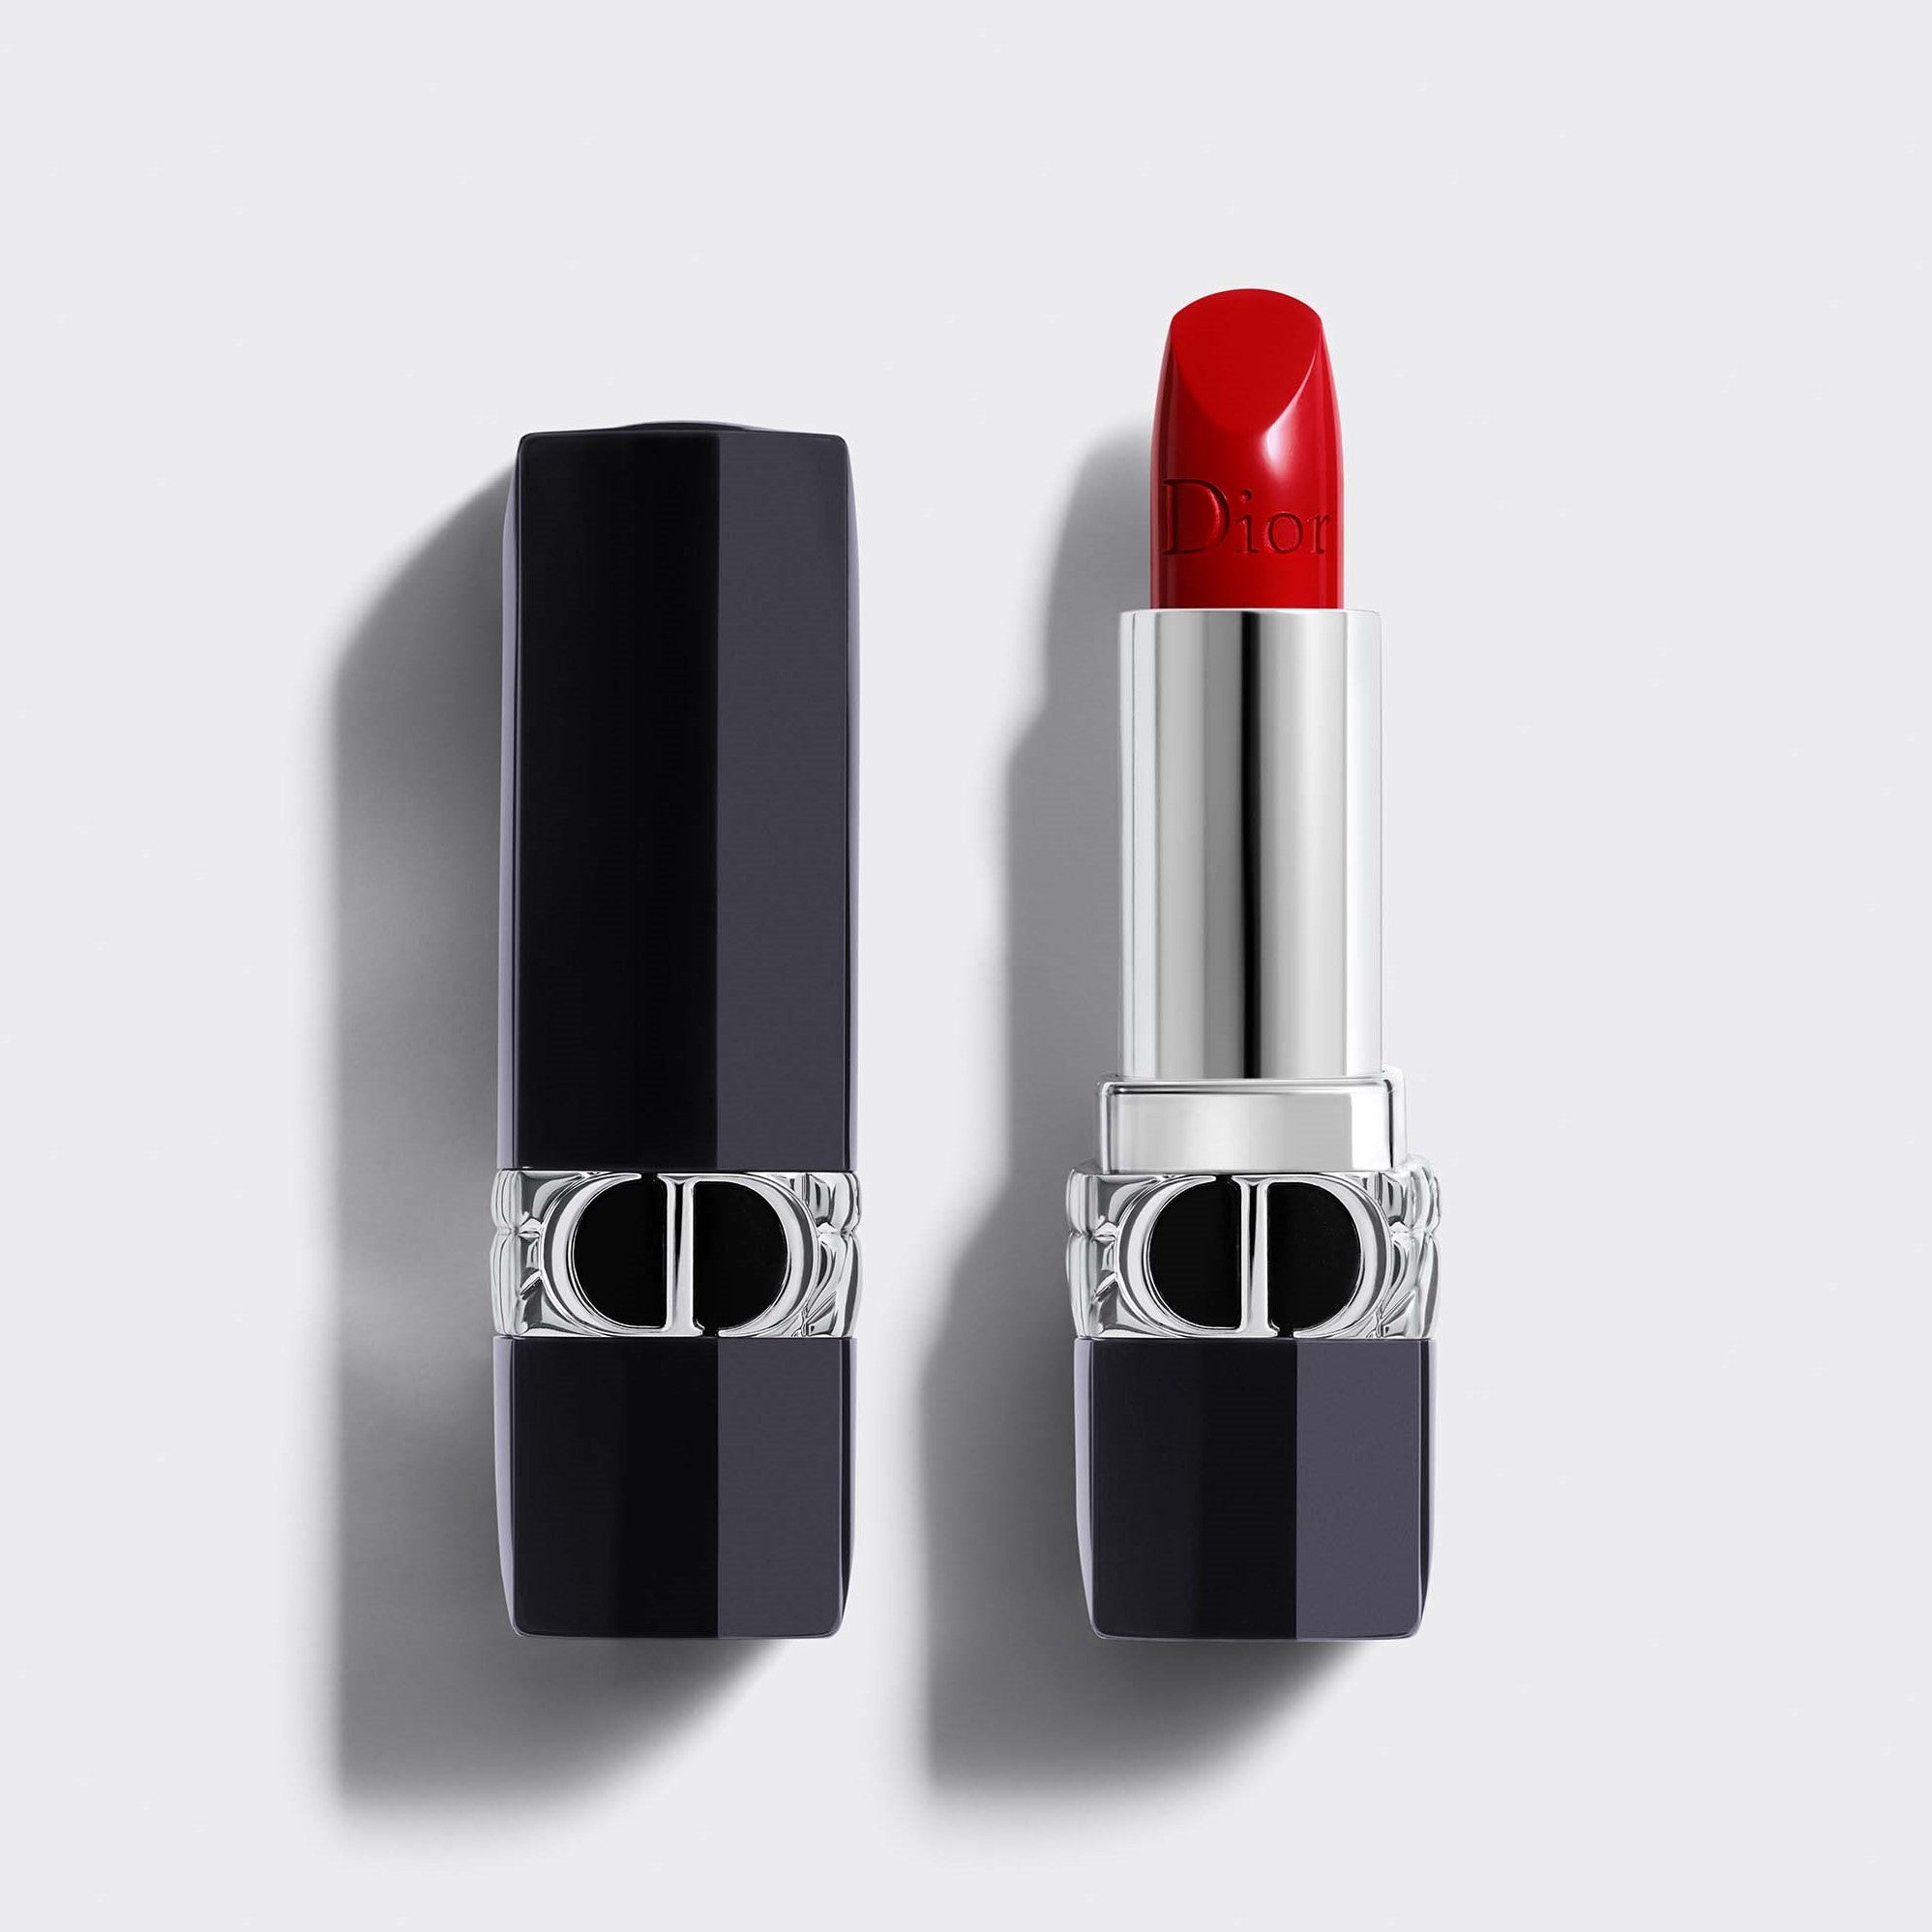 Rouge Dior Couture Color Refillable Lipstick | 4 Finishes: Satin, Matte, Metallic and Velvet - Floral Lip Care - Comfort and Long Wear